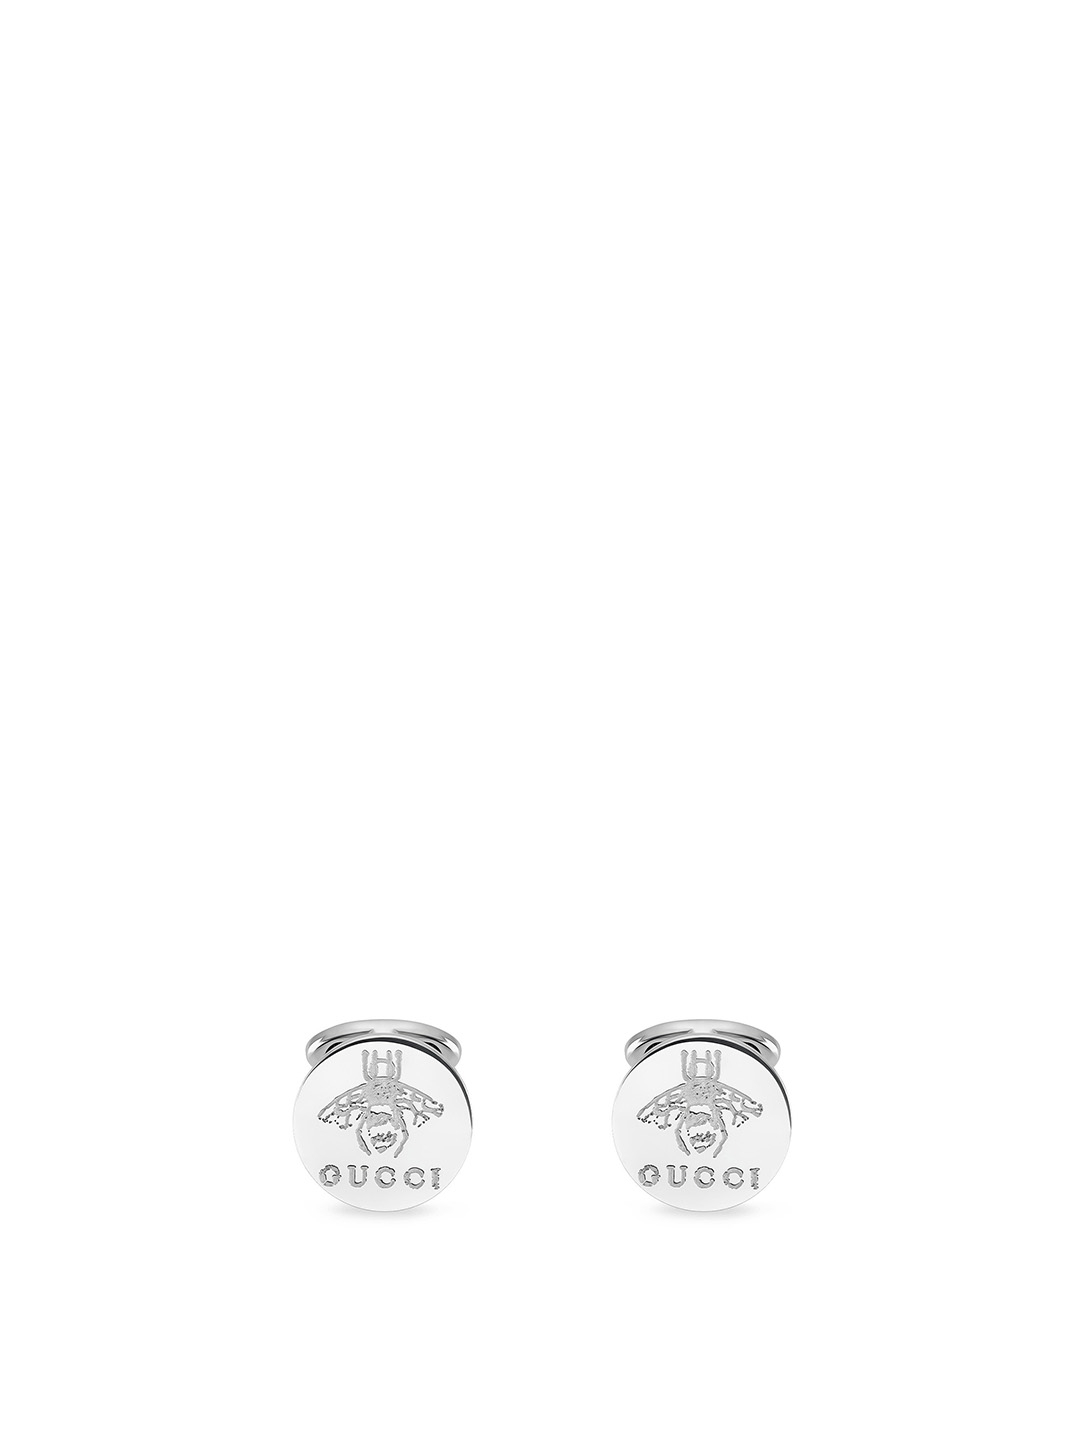 GUCCI Silver Bee Cufflinks With Logo Men's Silver